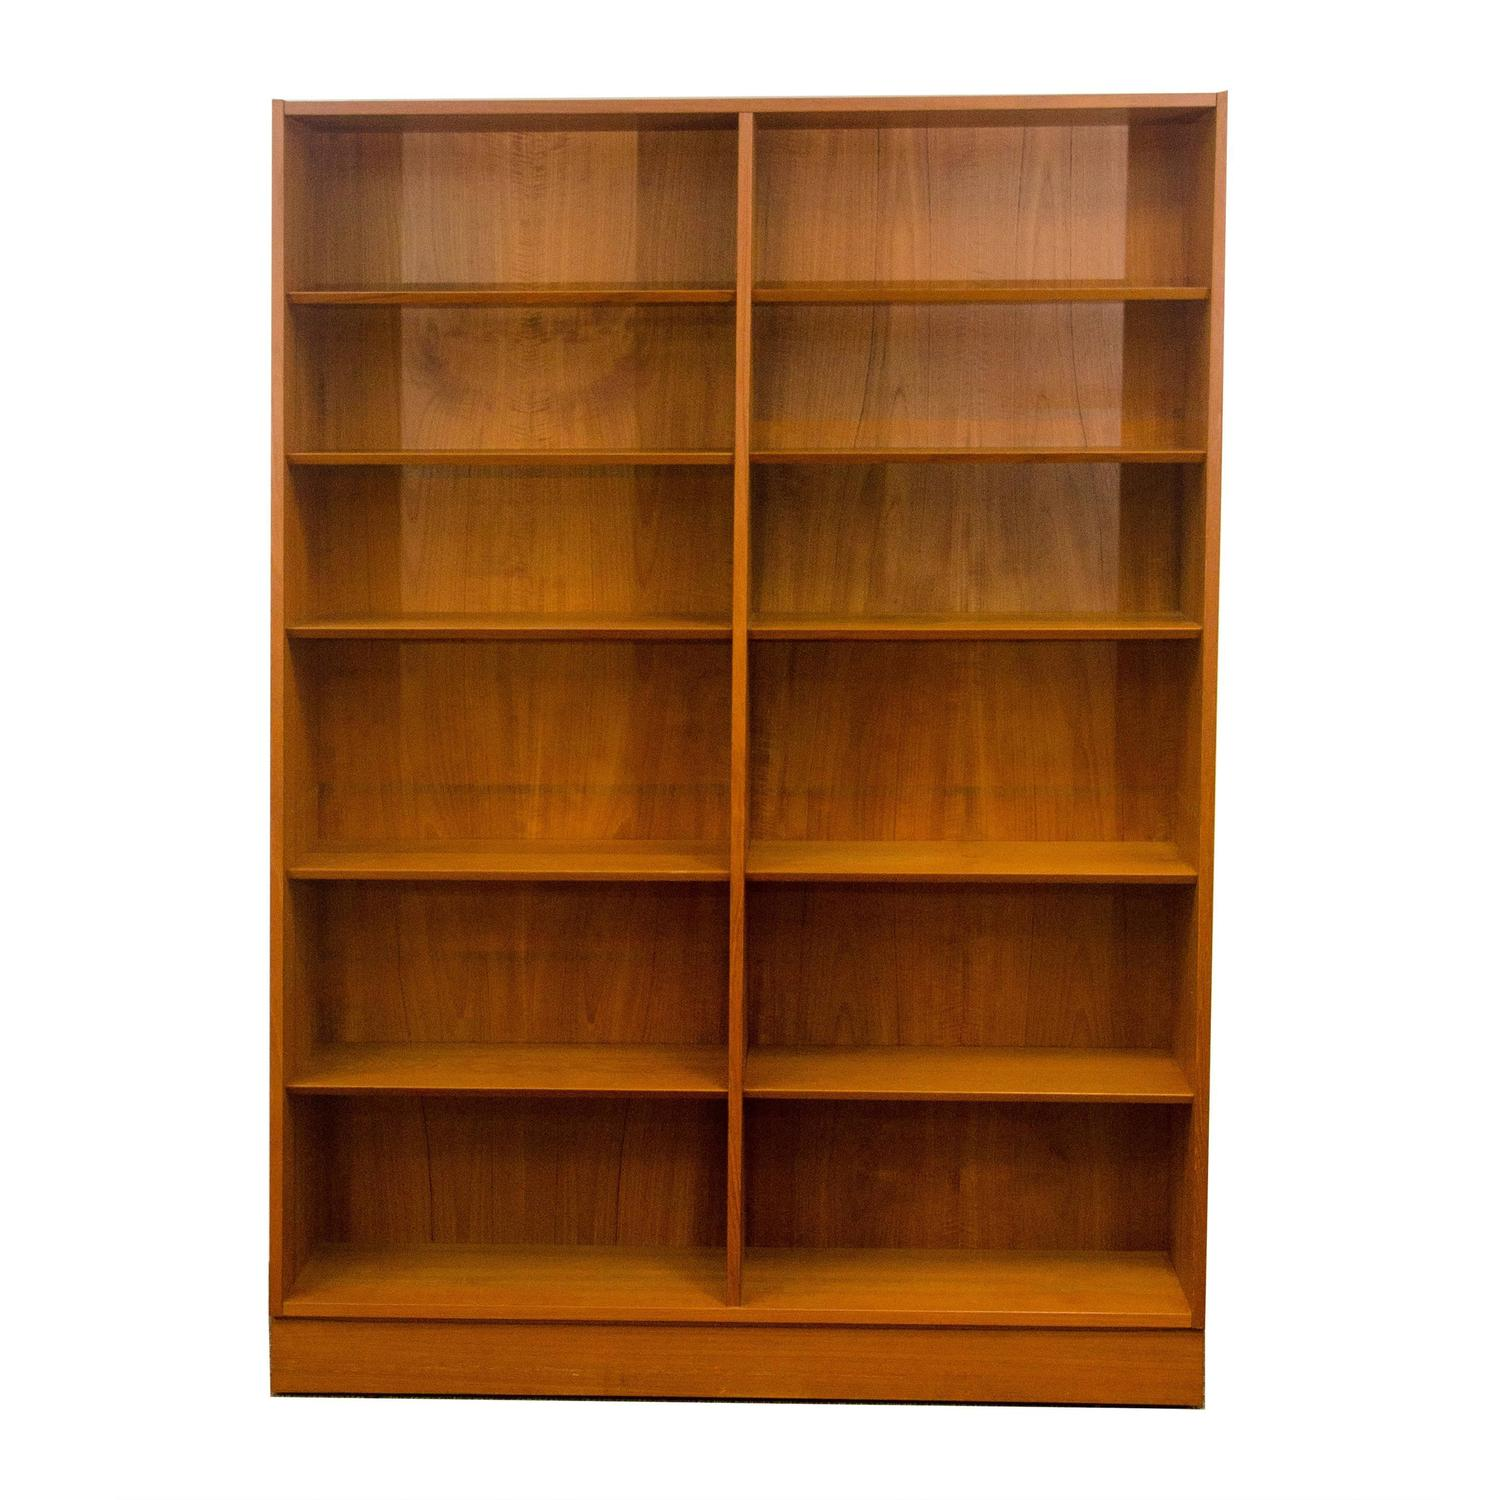 Danish Teak Bookcase Or Bookshelf By Poul Hundevad At 1stdibs